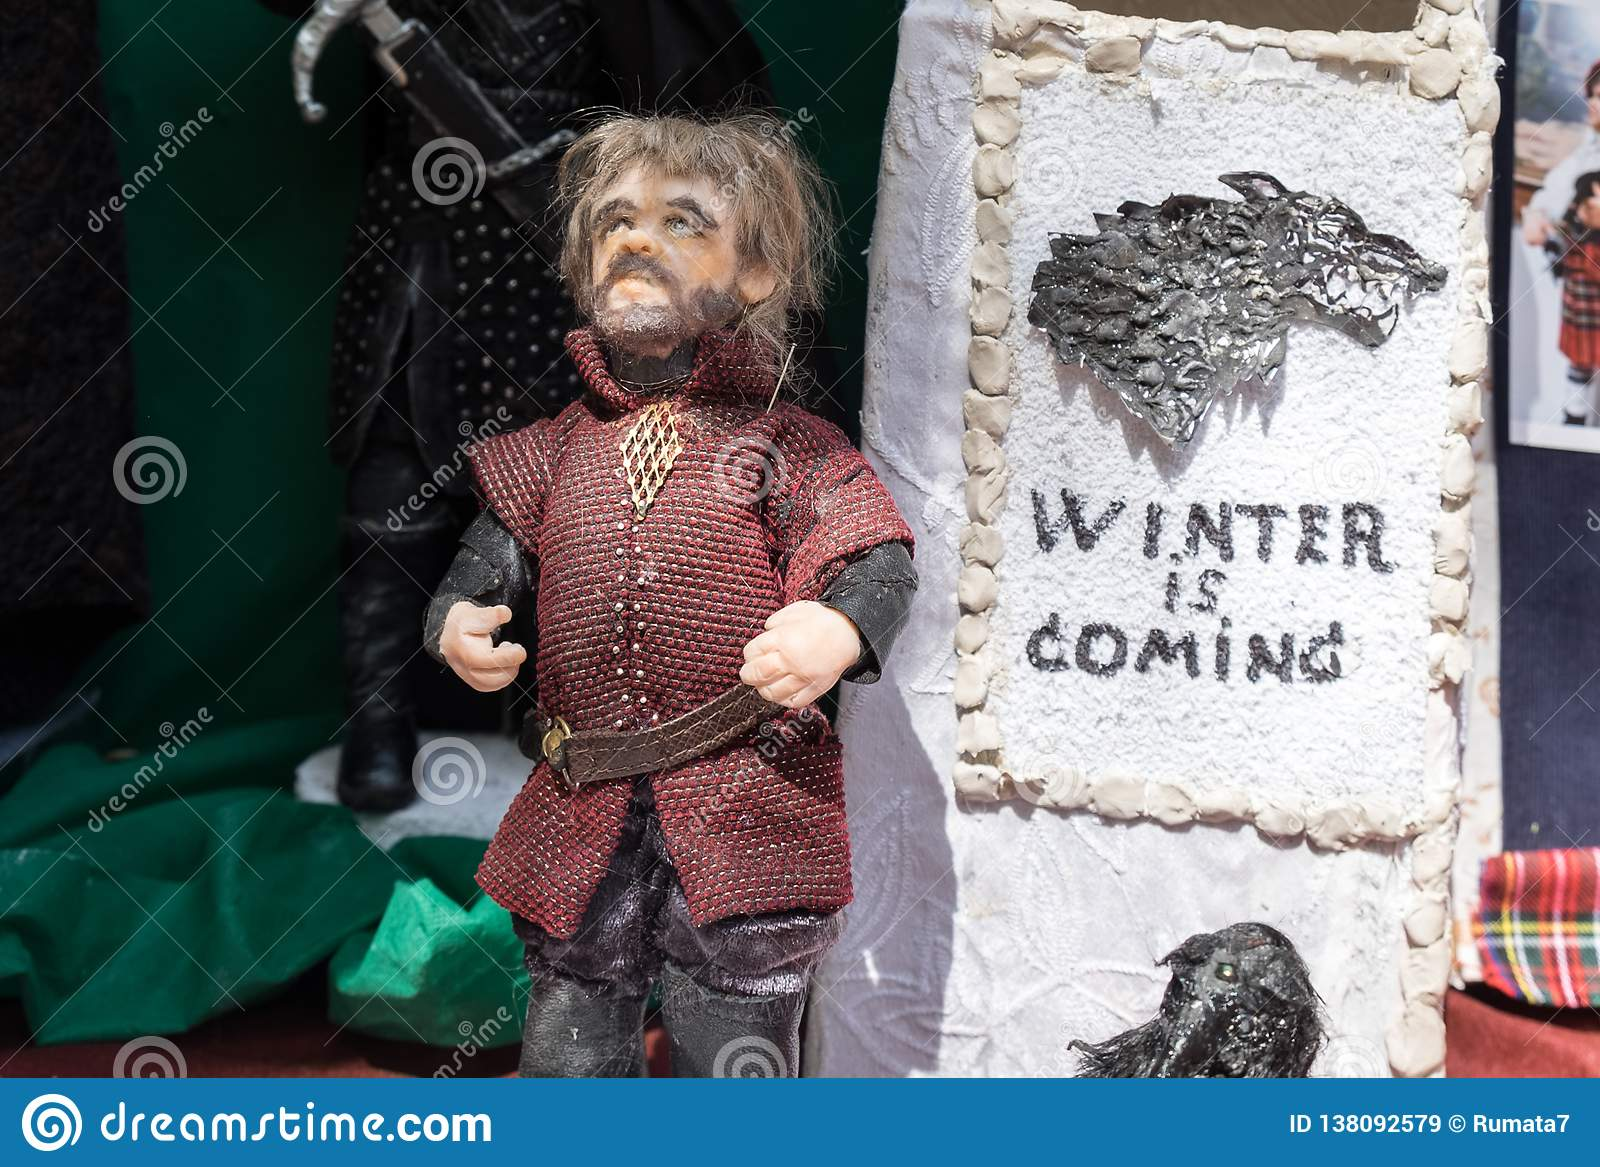 The puppet of Tyrion Lannister. Game of thrones character